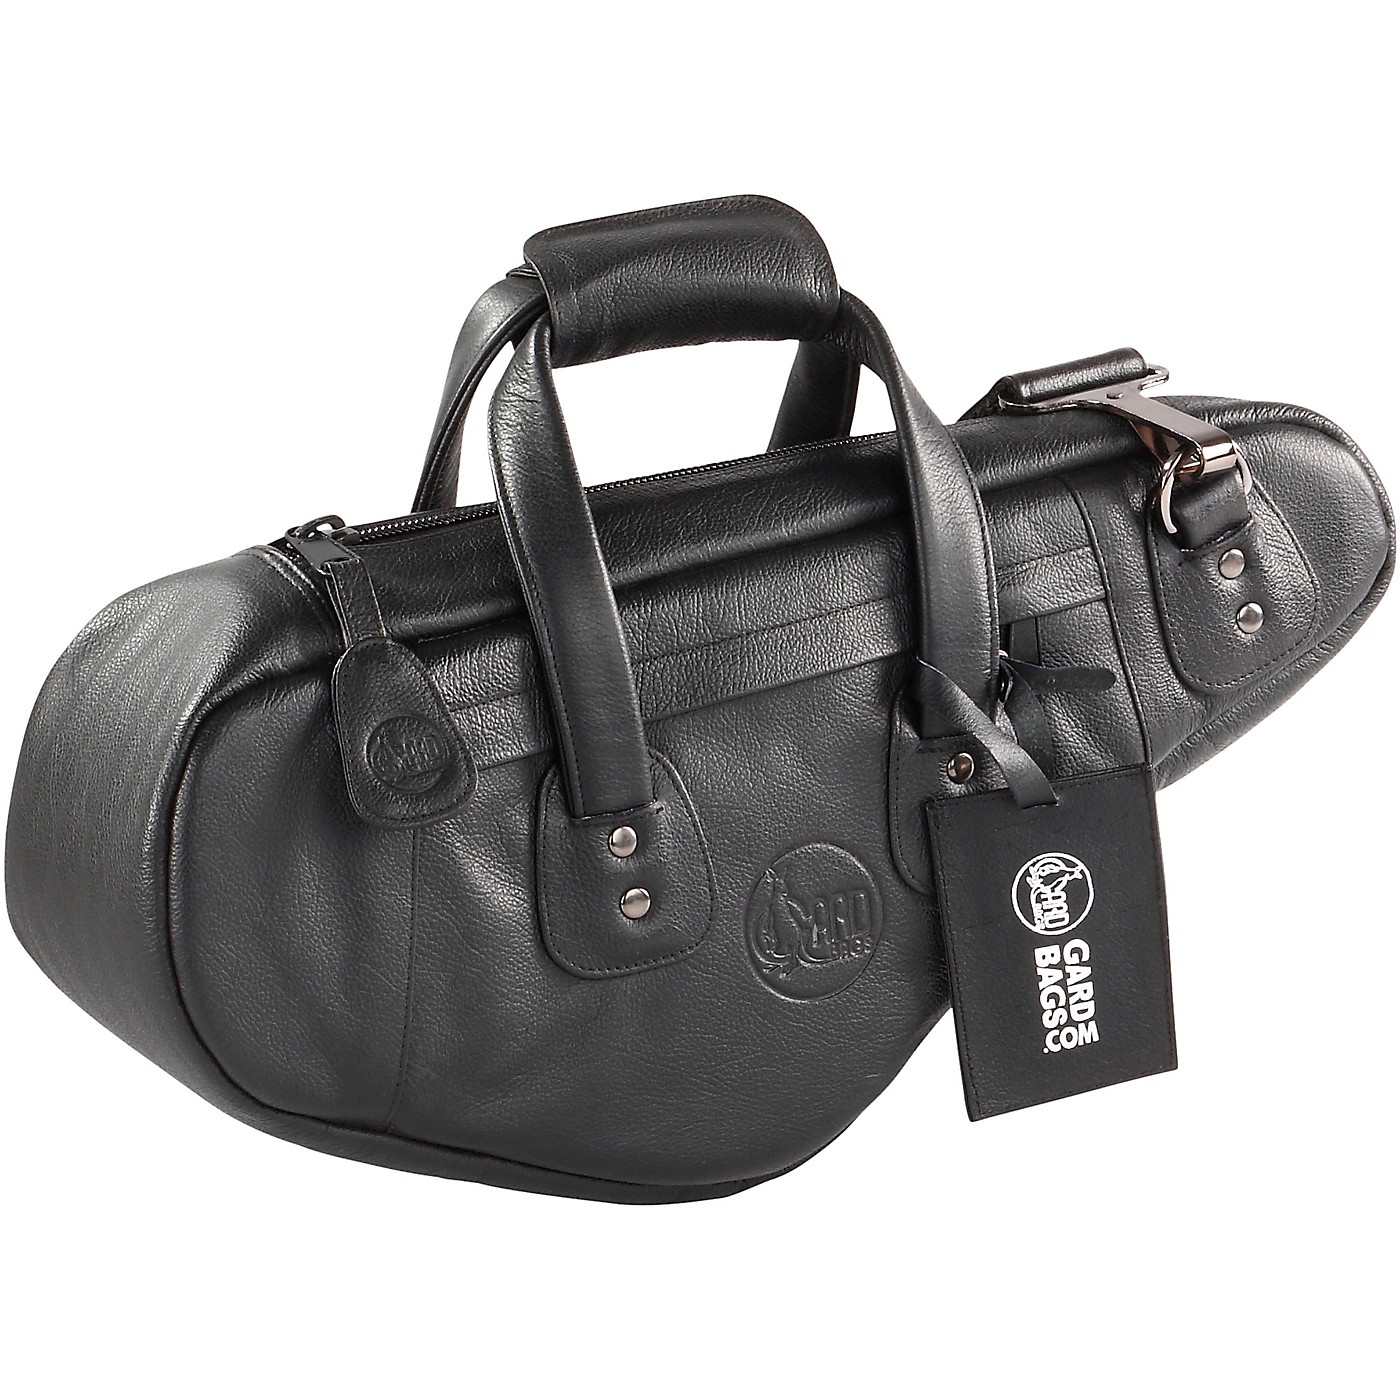 Gard Curved Soprano with Removable Neck Gig Bag (European Model) thumbnail